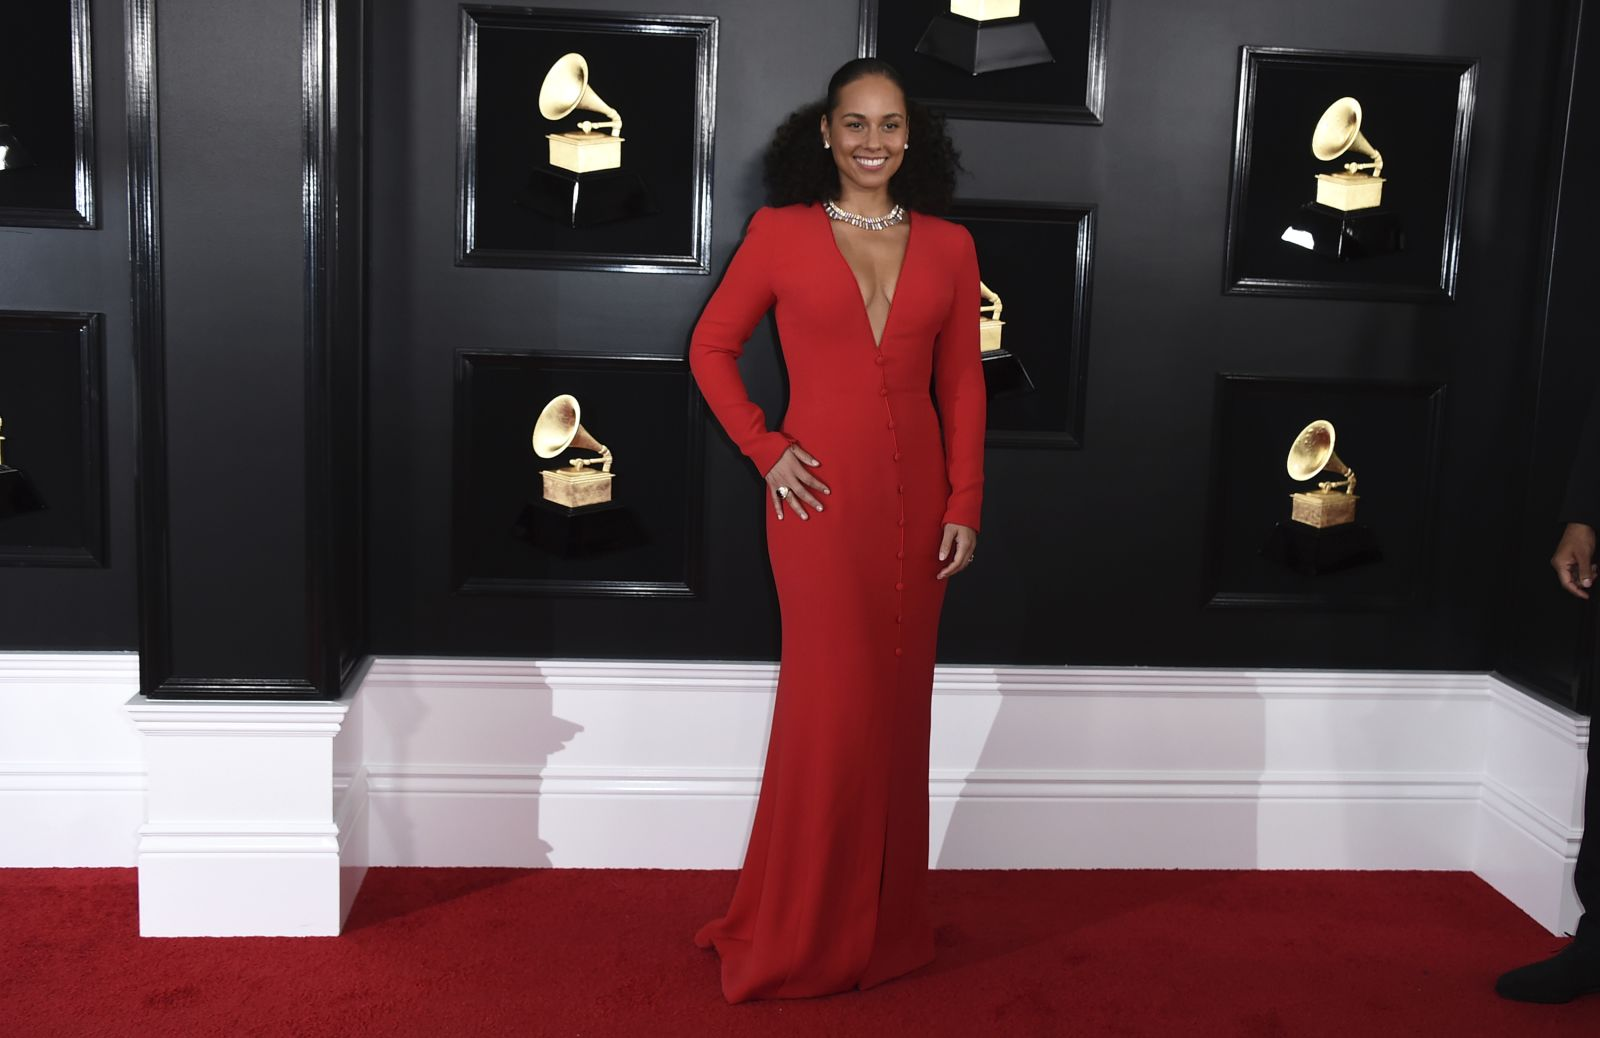 https___cdn.cnn.com_cnnnext_dam_assets_190210191857-20-grammys-red-carpet